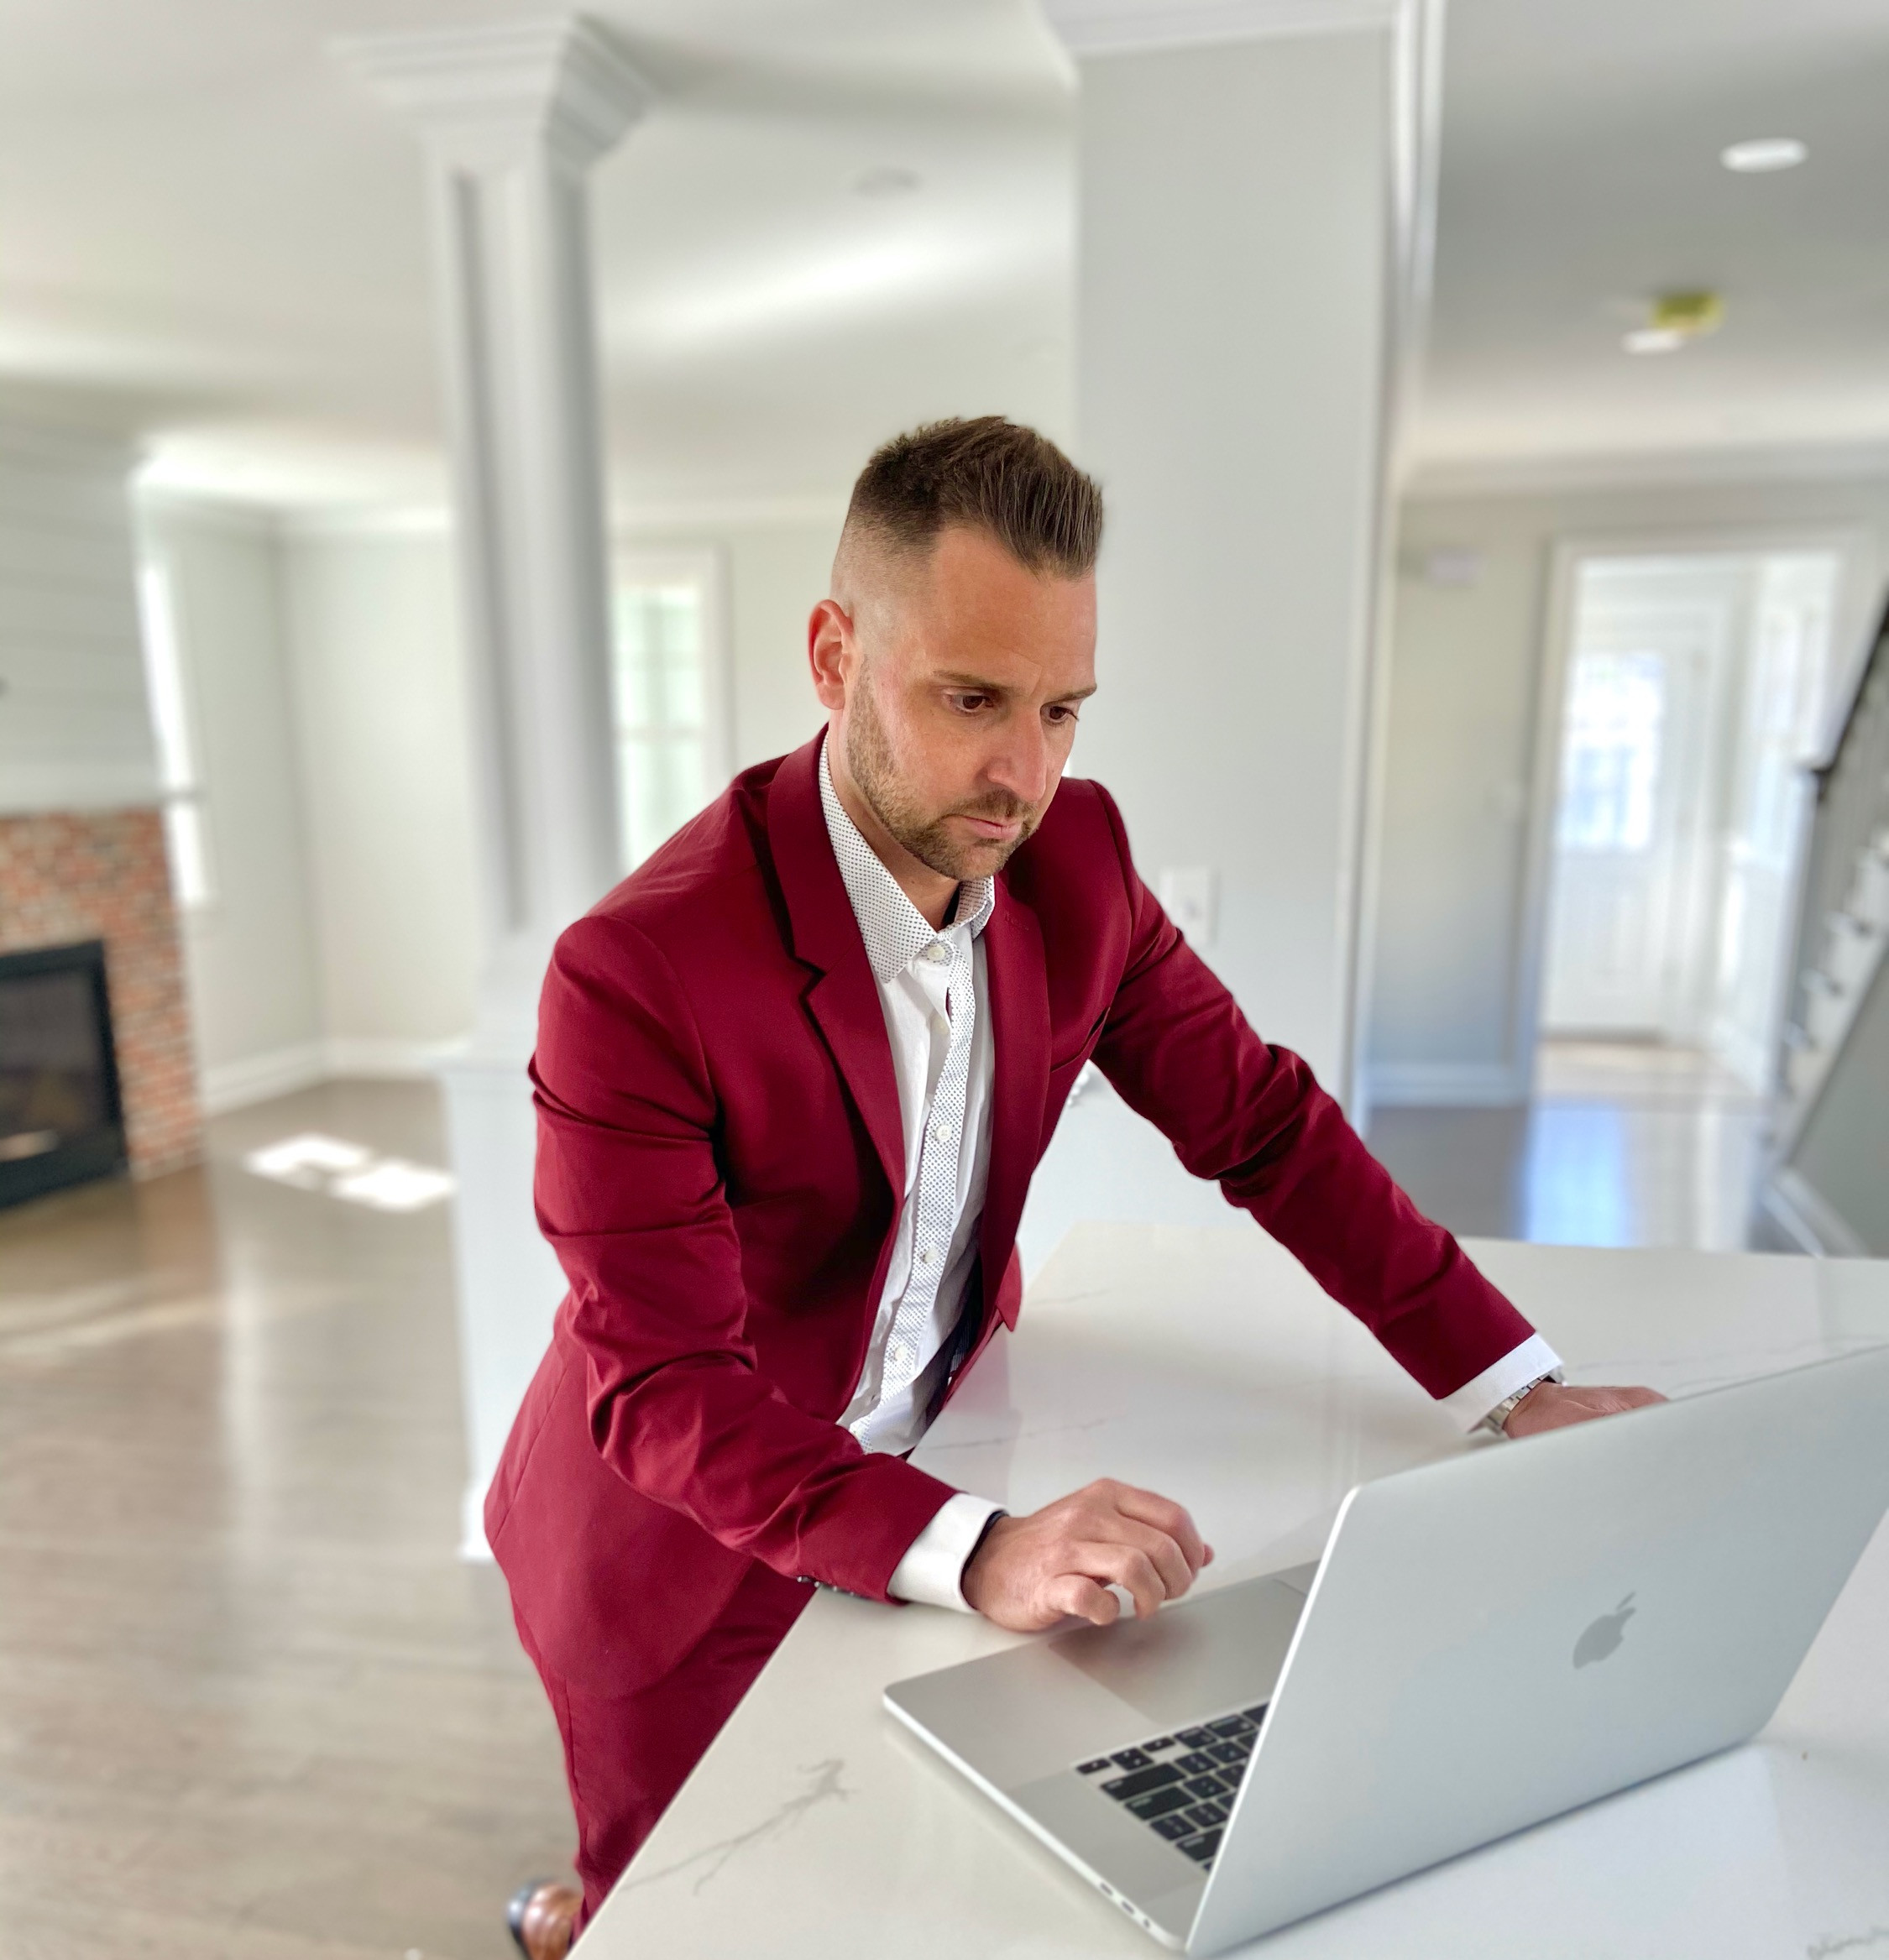 MARKET ANALYSIS OF YOUR HOME